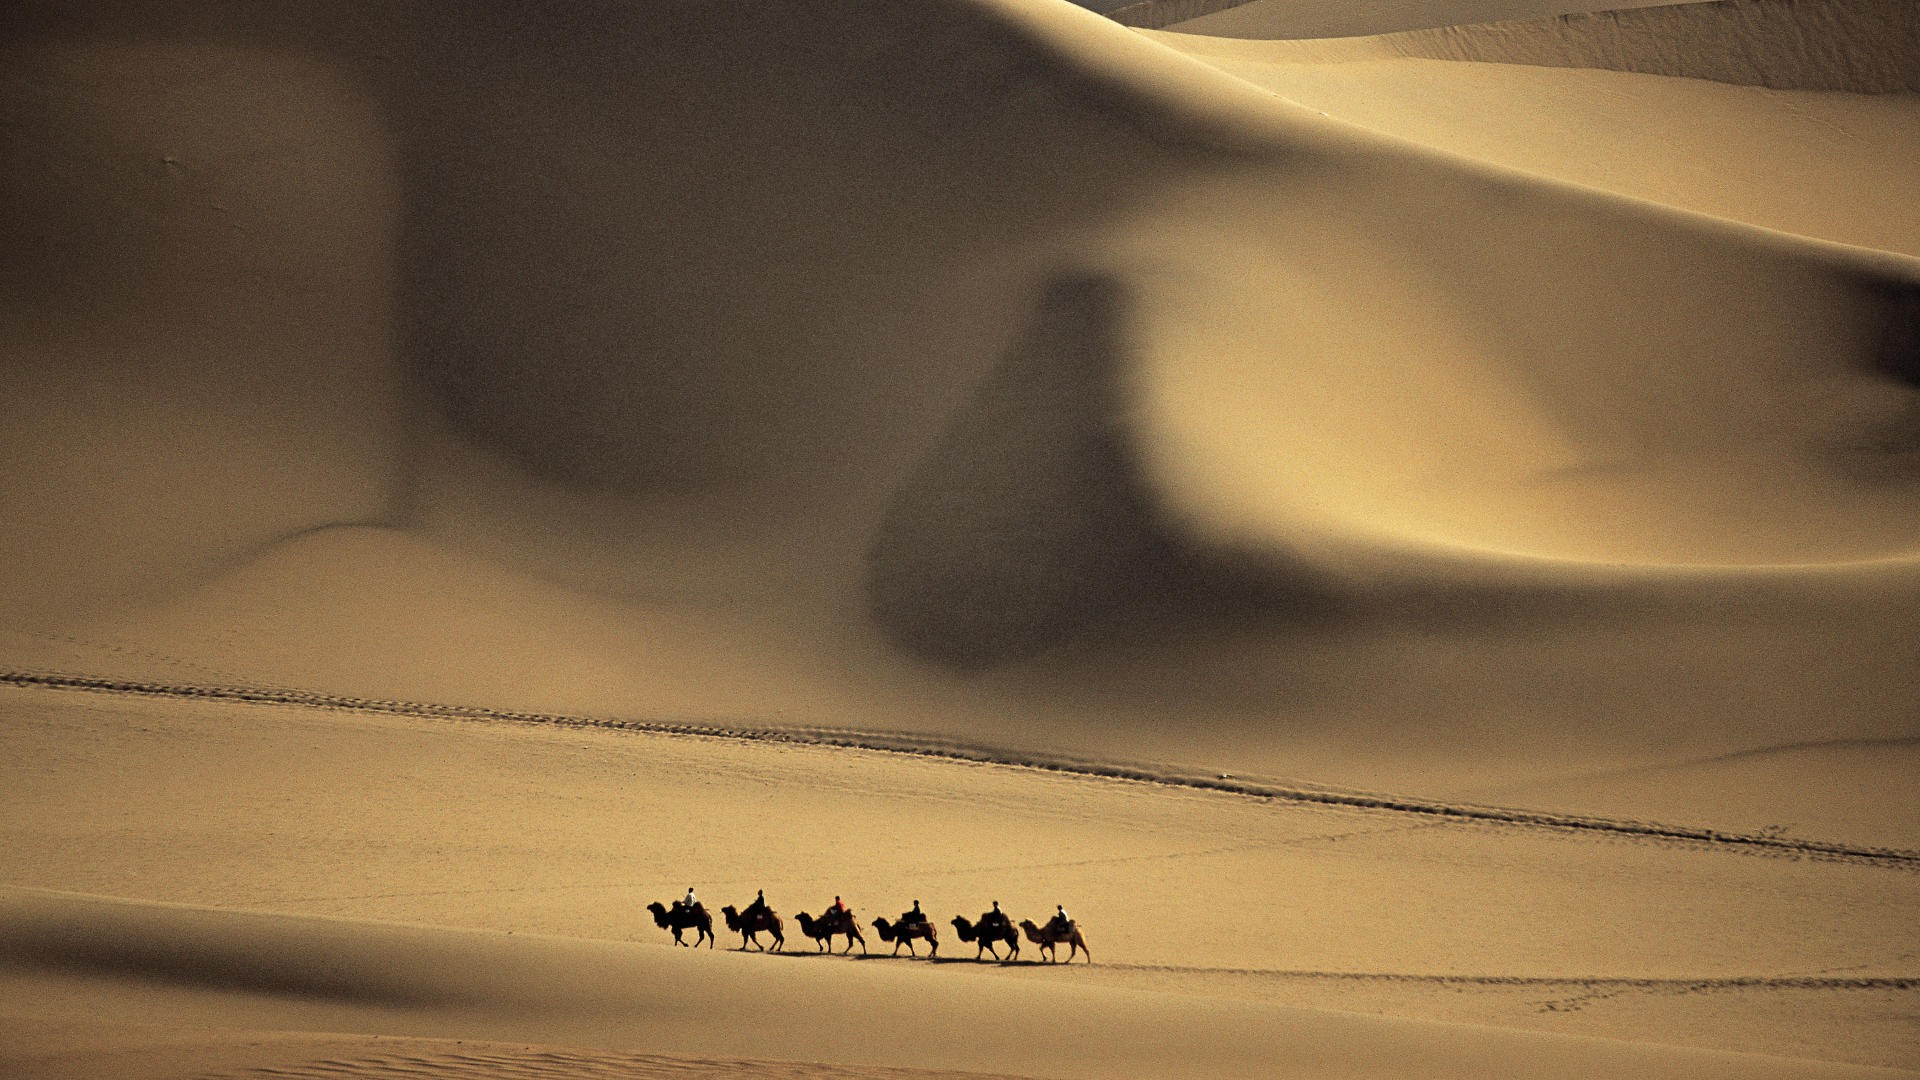 Indian Culture Wallpaper Hd Stories From The Road In This Case The Actual Silk Road